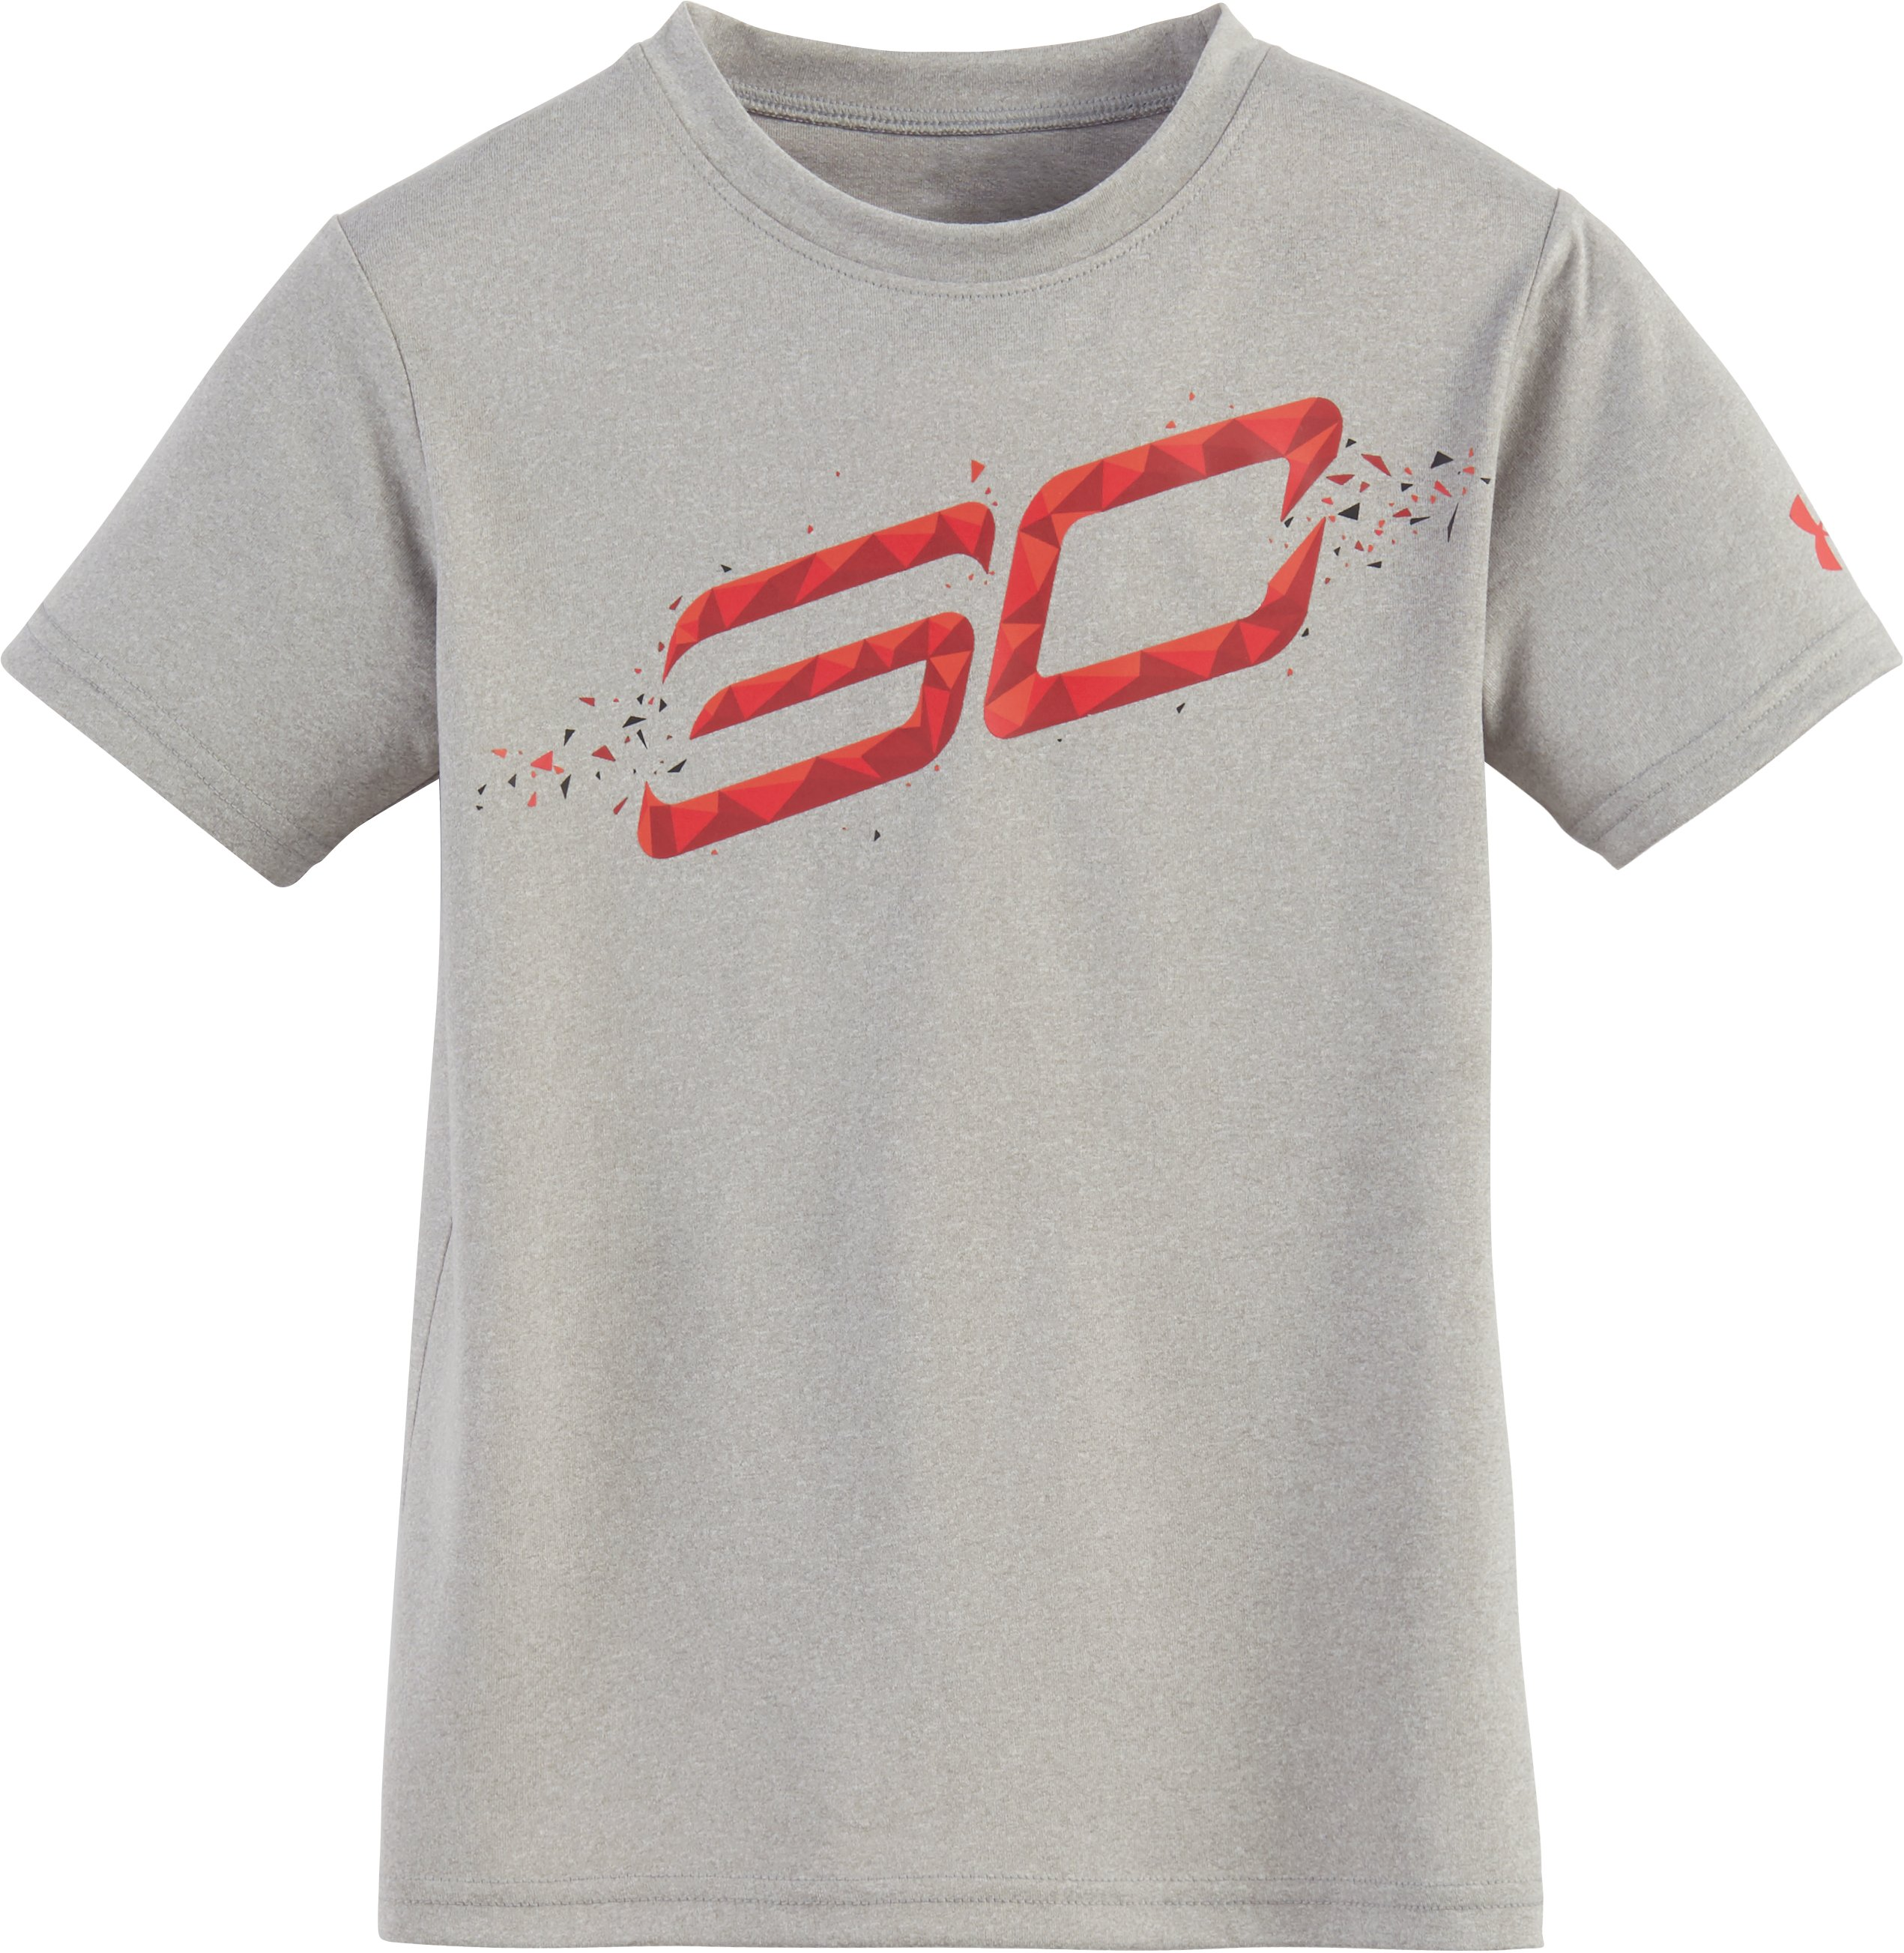 Boys' Pre-School SC30 Player Short Sleeve Shirt, True Gray Heather, zoomed image